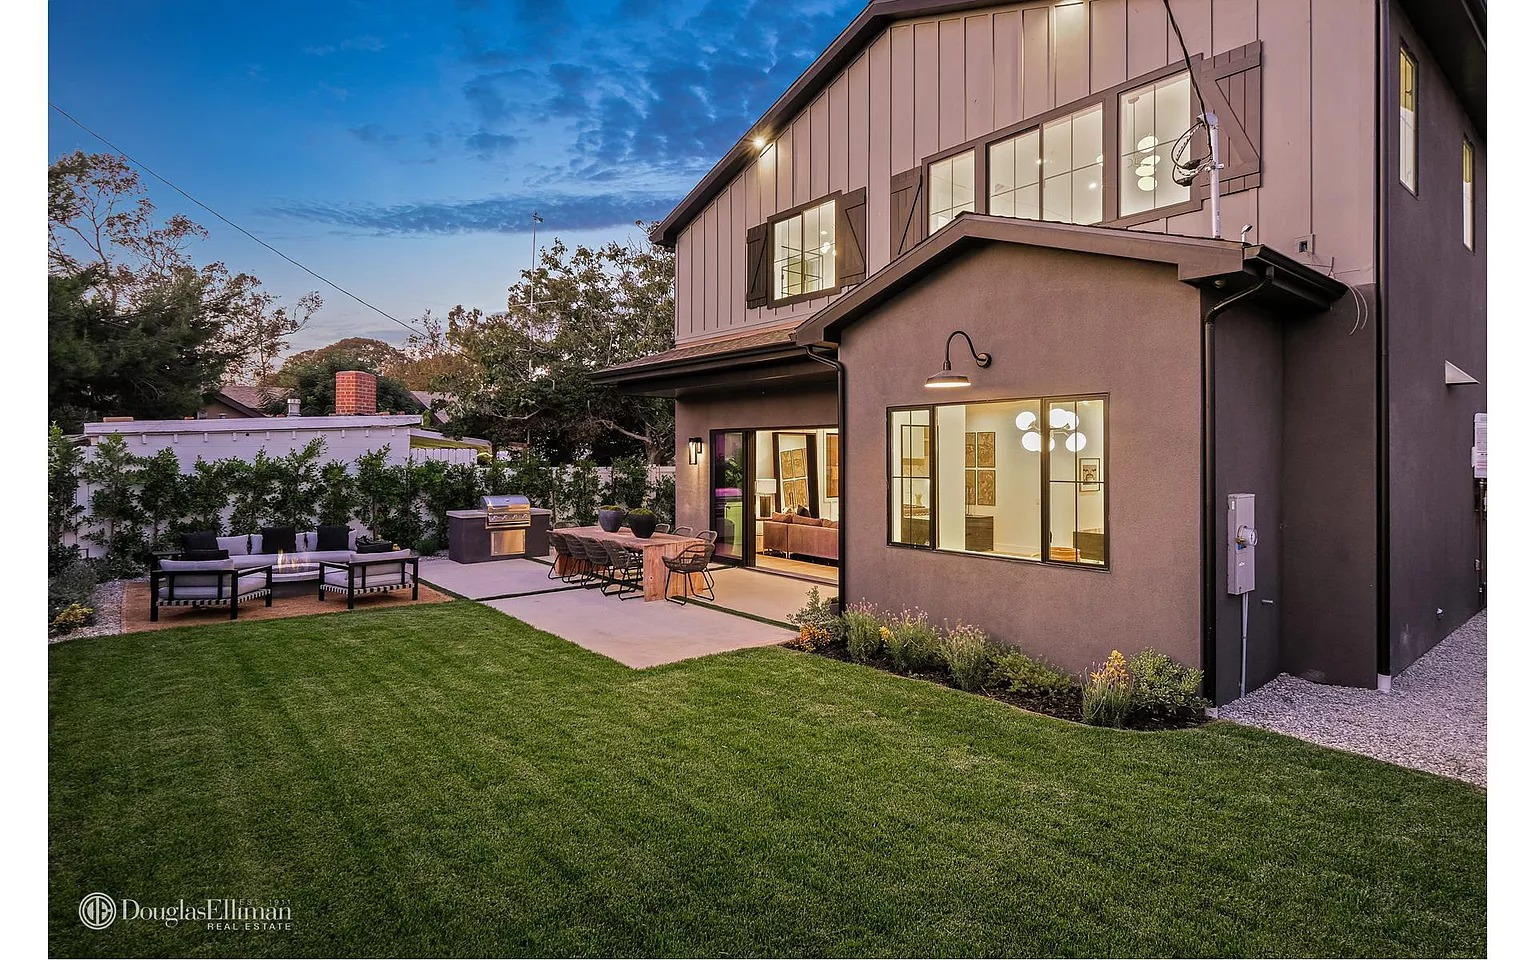 1519 Walnut Ave, Venice, CA 90291 - $3,495,000 home for sale, house images, photos and pics gallery